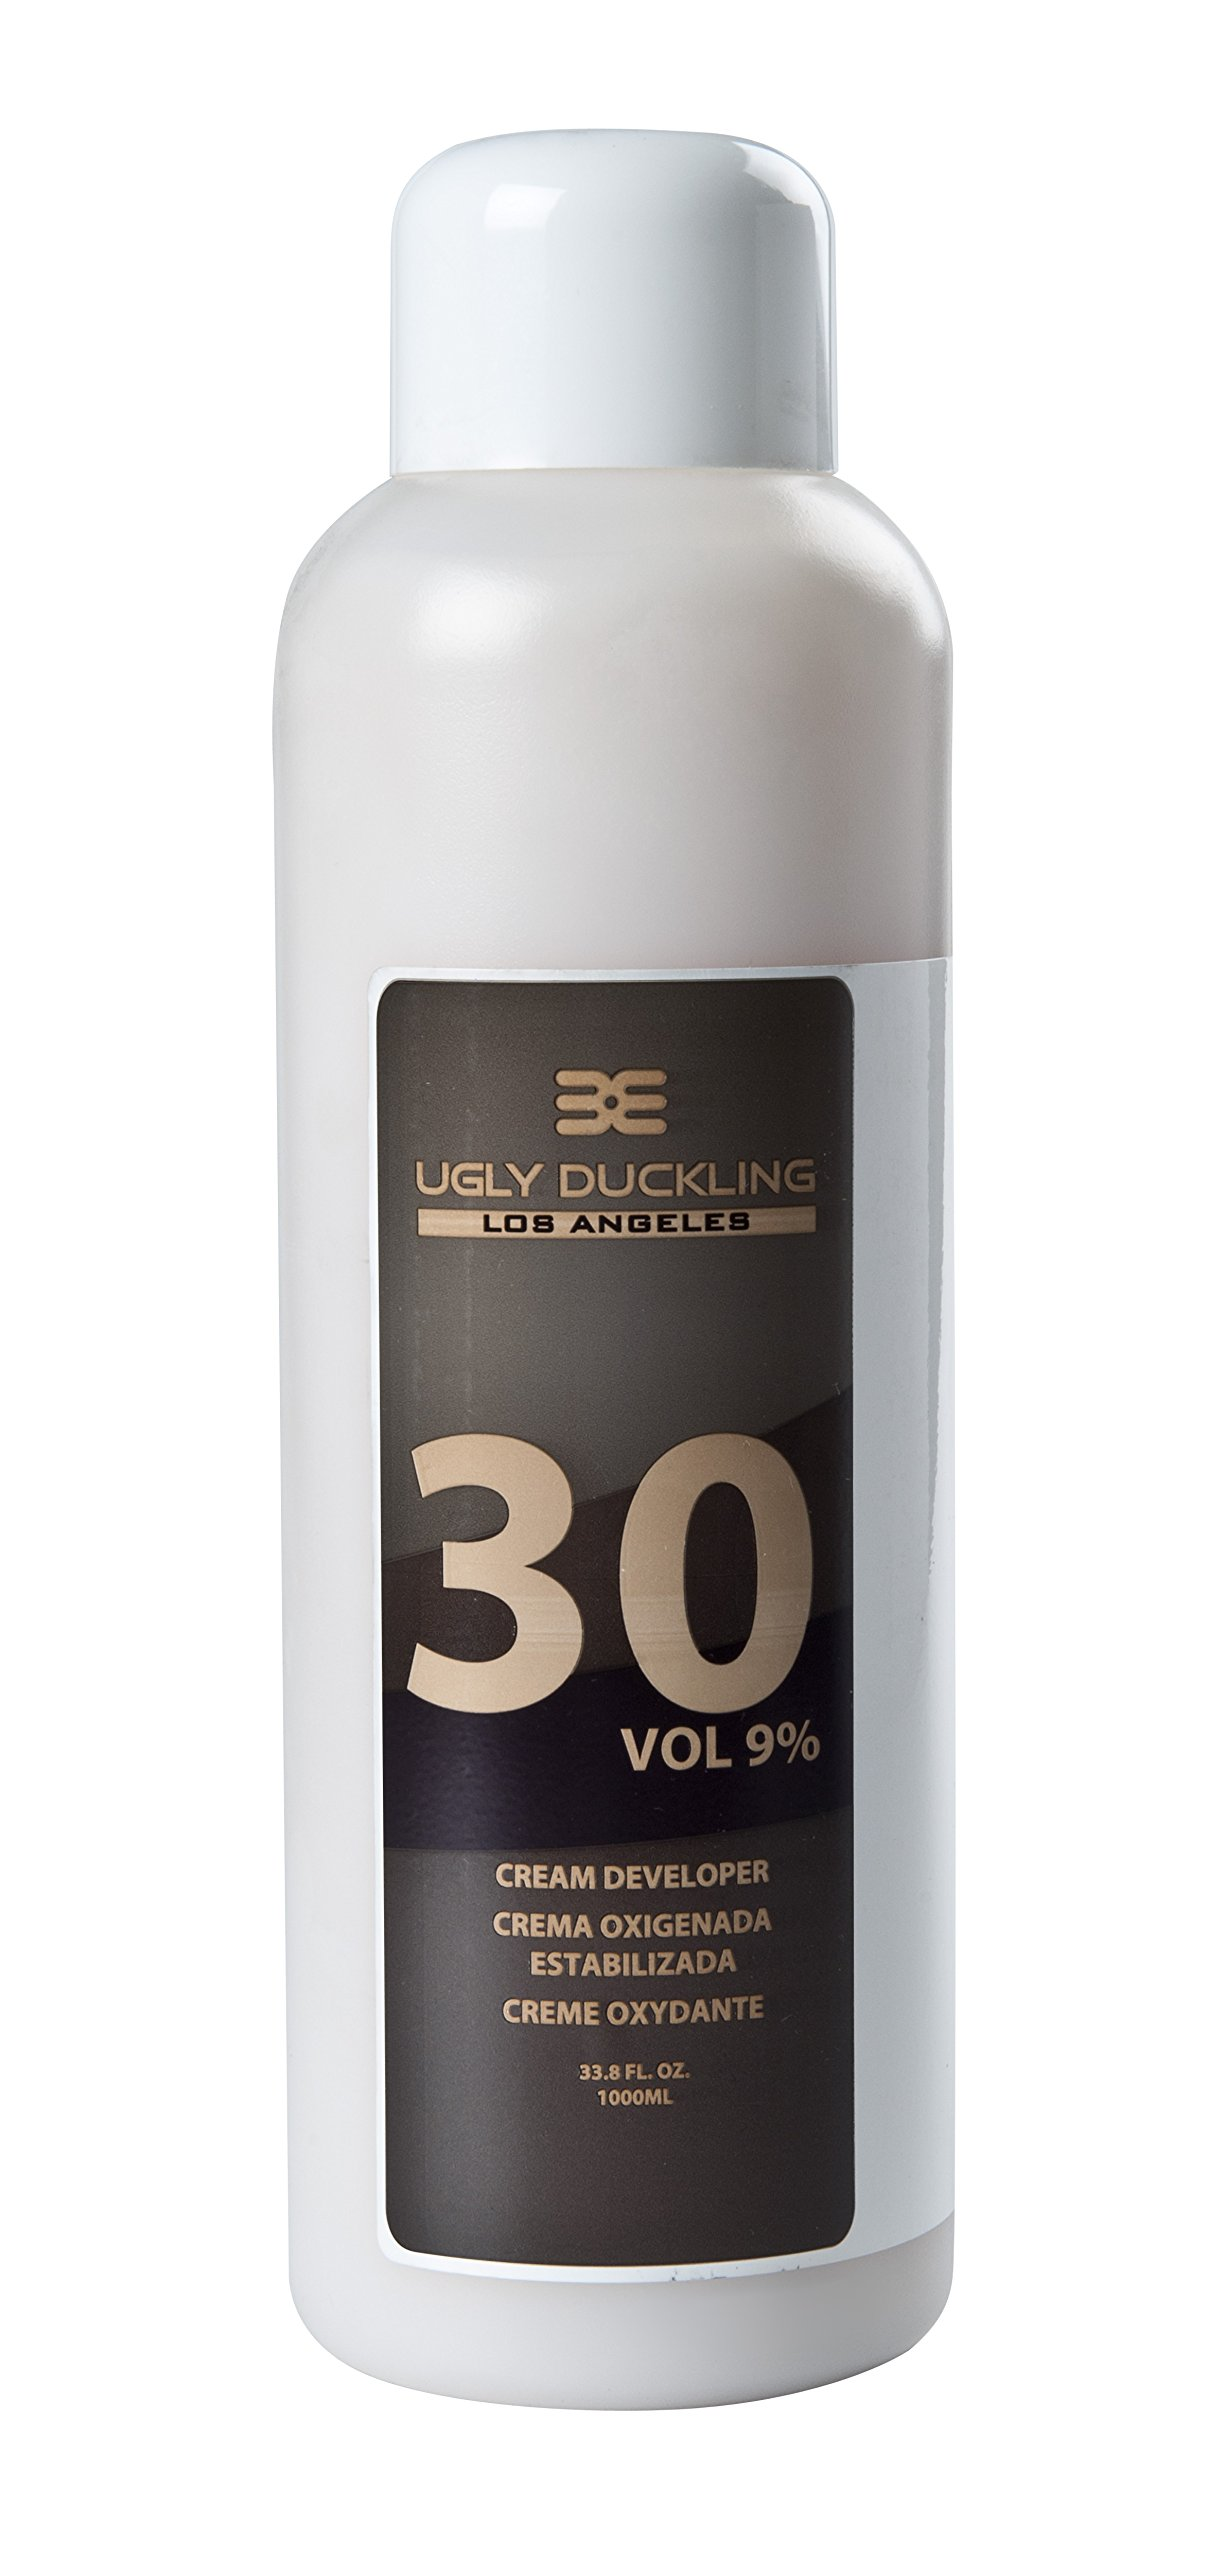 Ugly Duckling Los Angeles Professional 30 Volume (9%) CREAM DEVELOPER 33 oz (1 liter). For salon use, large size. For 2-3 levels of lift. Made in Europe by Ugly Duckling Los Angeles (Image #1)